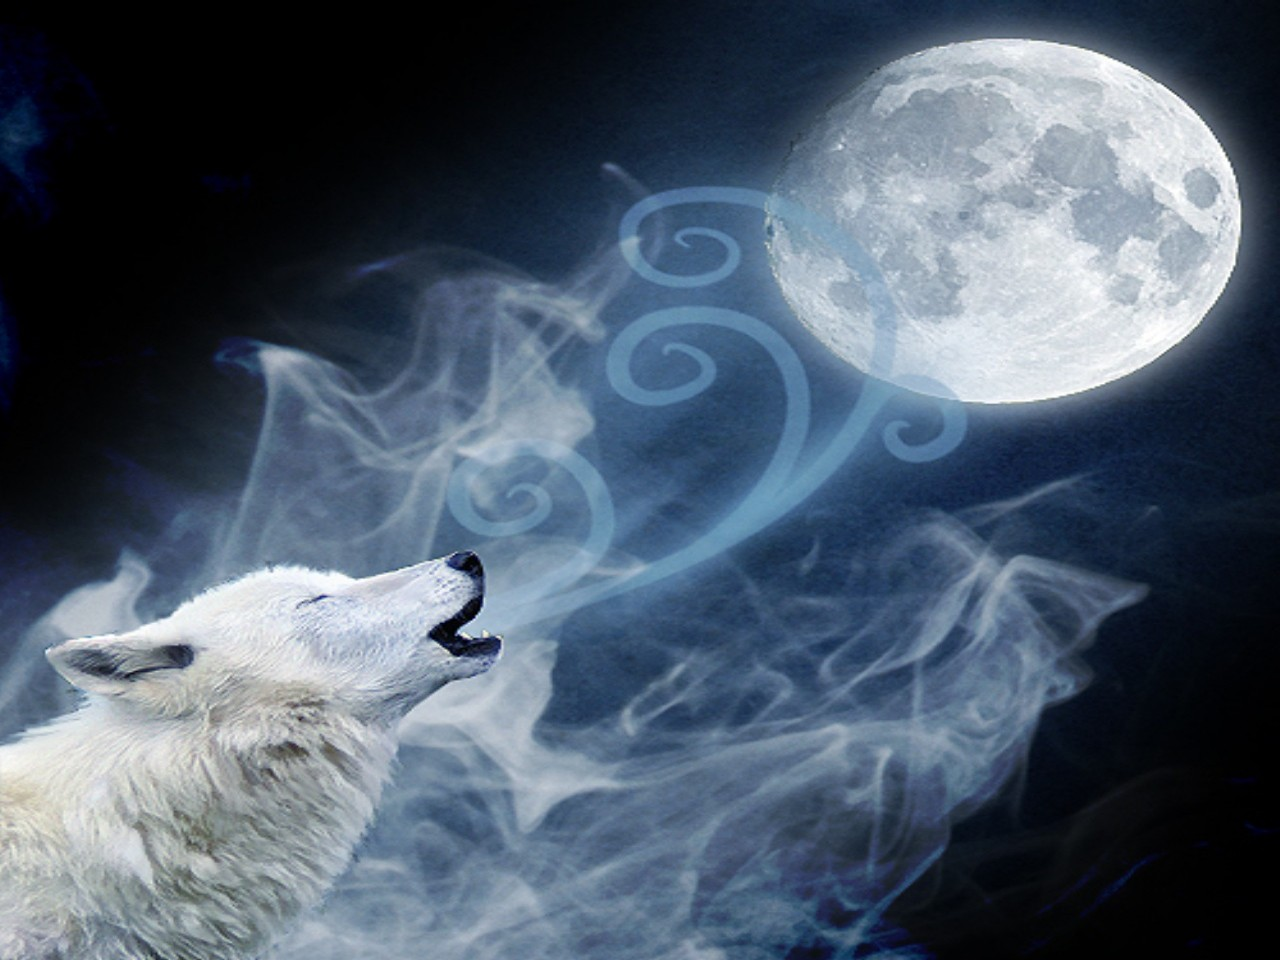 Free Download Howling Wolf Moon Wallpaper Howling Wolf Moon 1280x960 For Your Desktop Mobile Tablet Explore 48 Wolf And Moon Wallpaper Wolves Wallpapers For Desktop Wolf Wallpaper 1080p Wolf Wallpaper